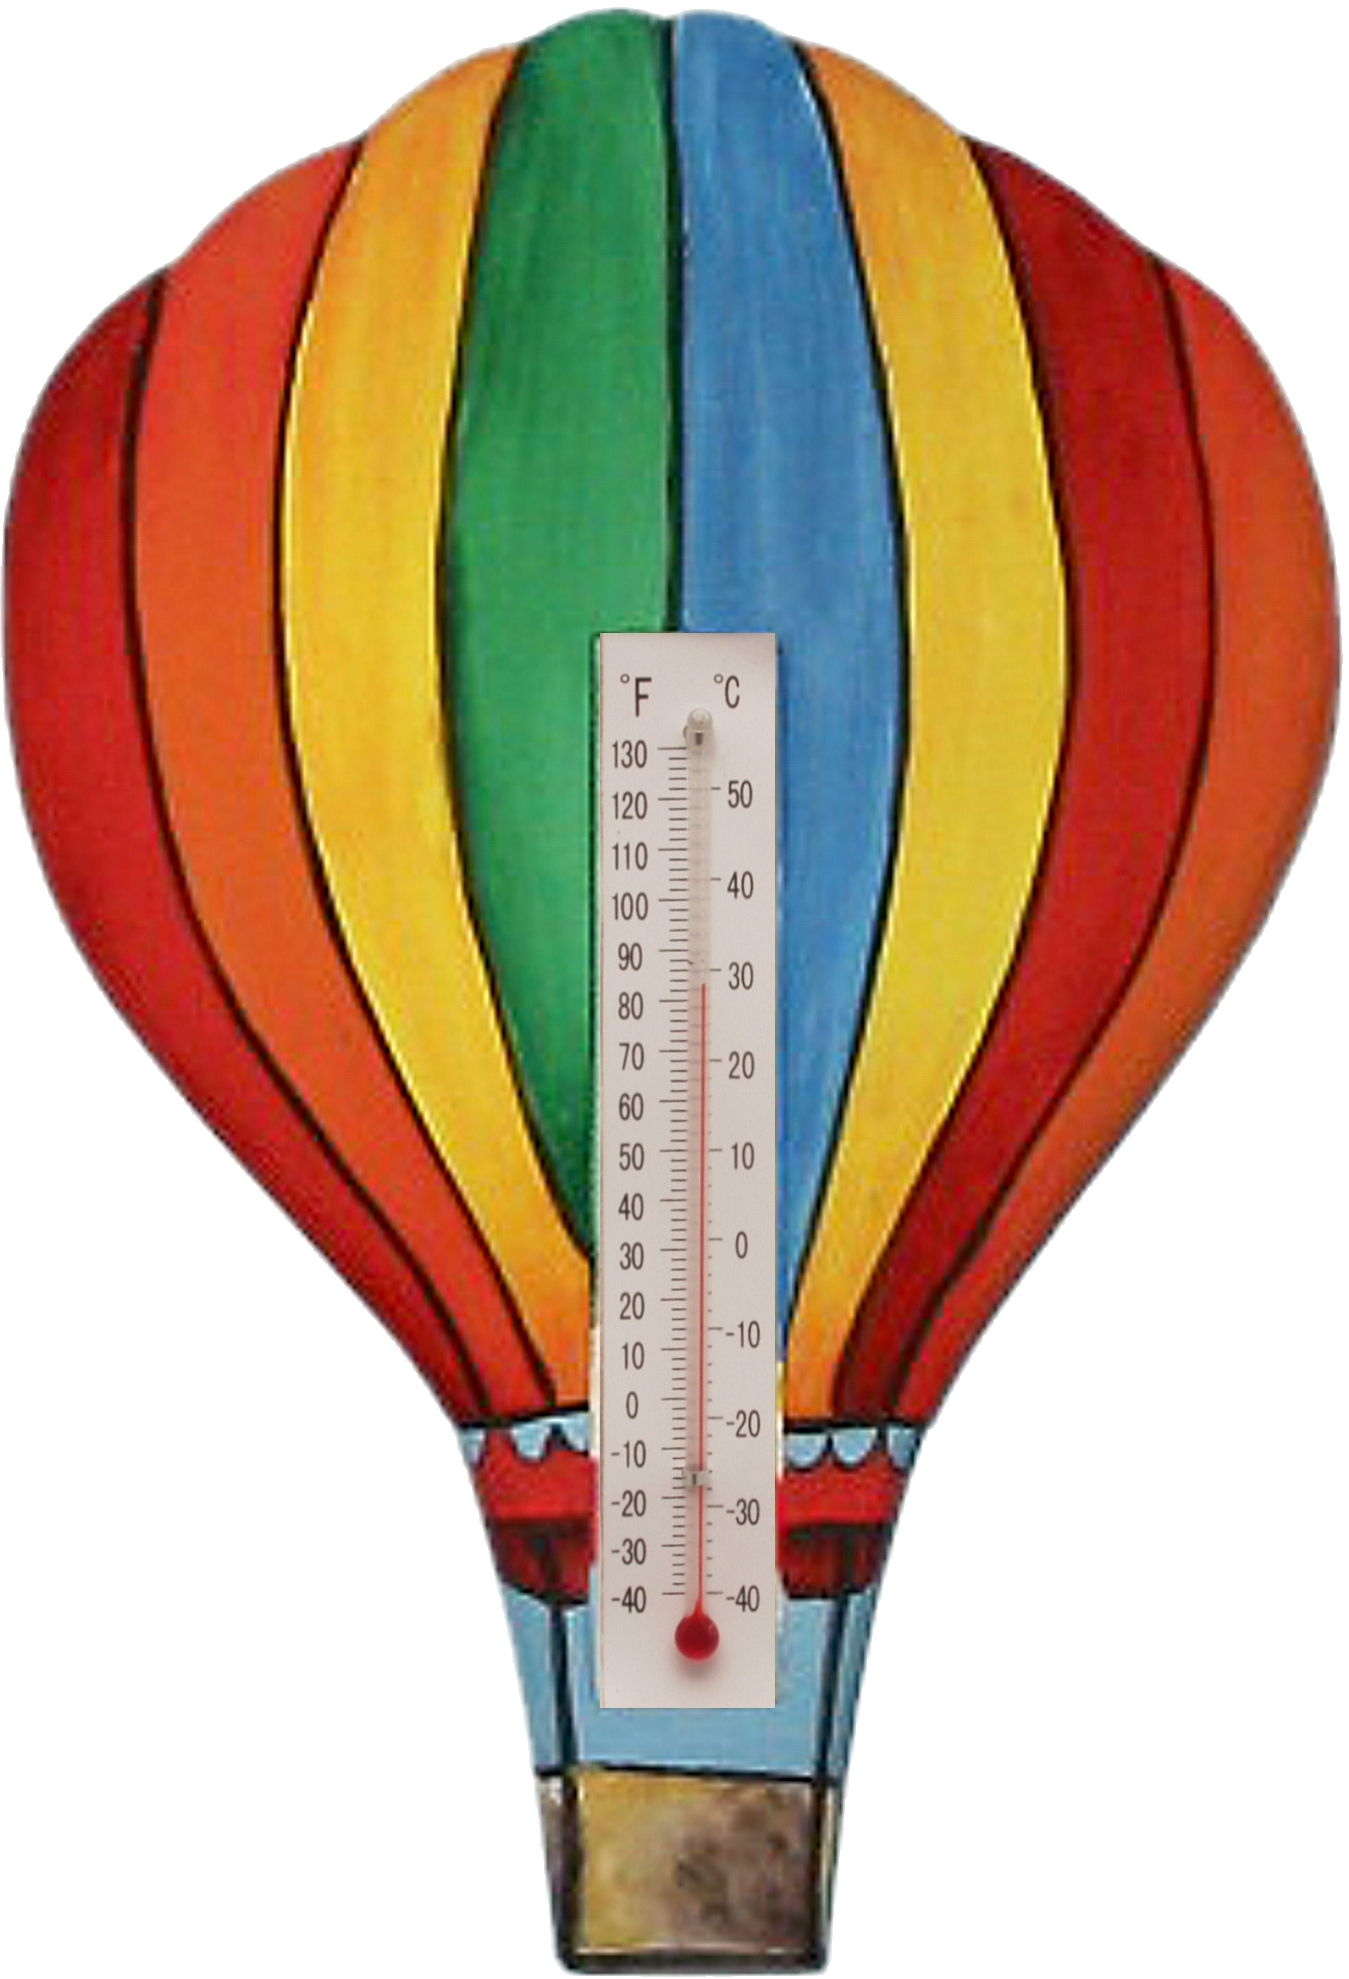 Hot Air Balloon with Vertical Stripes Small Window Thermometer